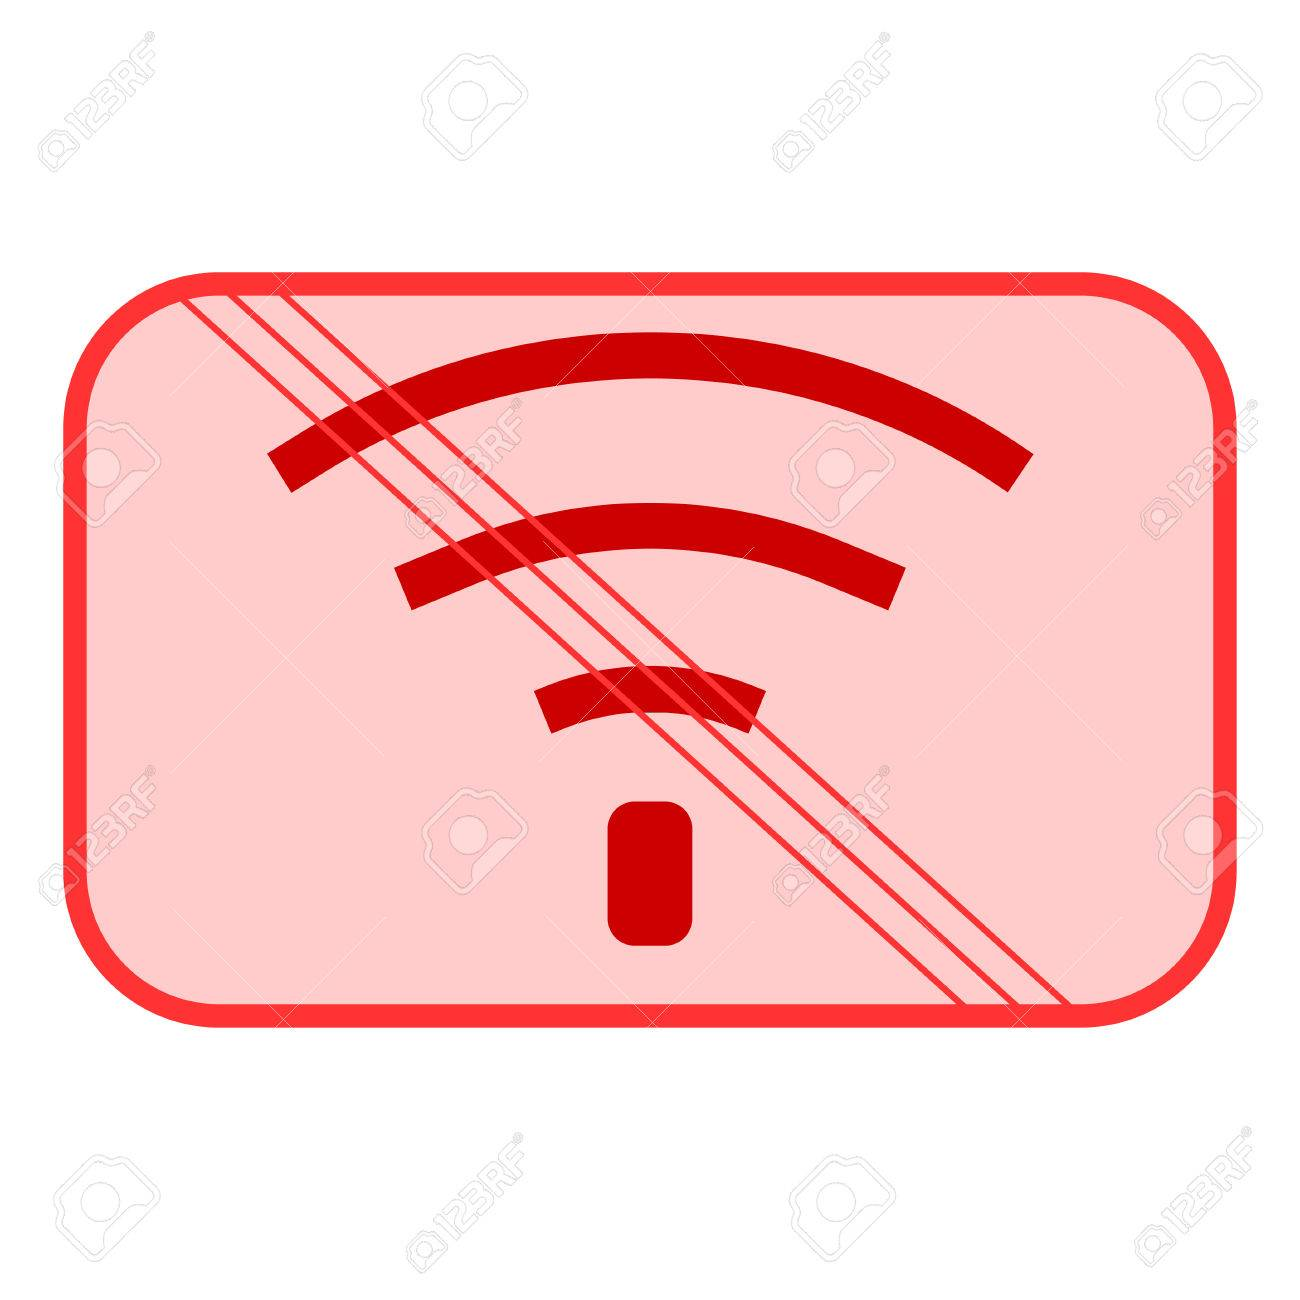 No Wifi Sign Bad Internet Connection Signal Antenna Wireless Network Diagram